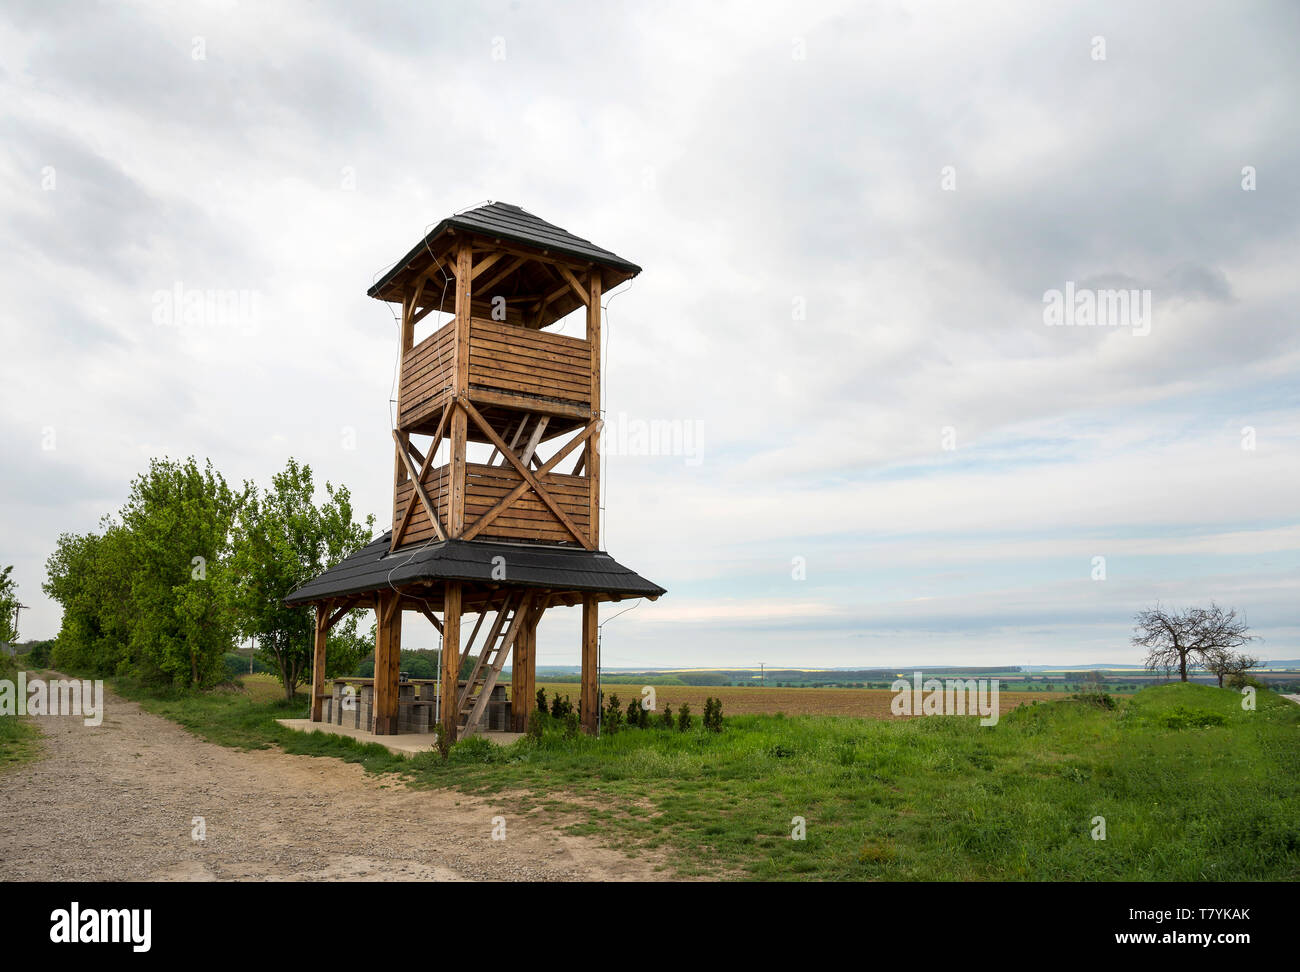 The wooden watchtower  in the countryside - Stock Image